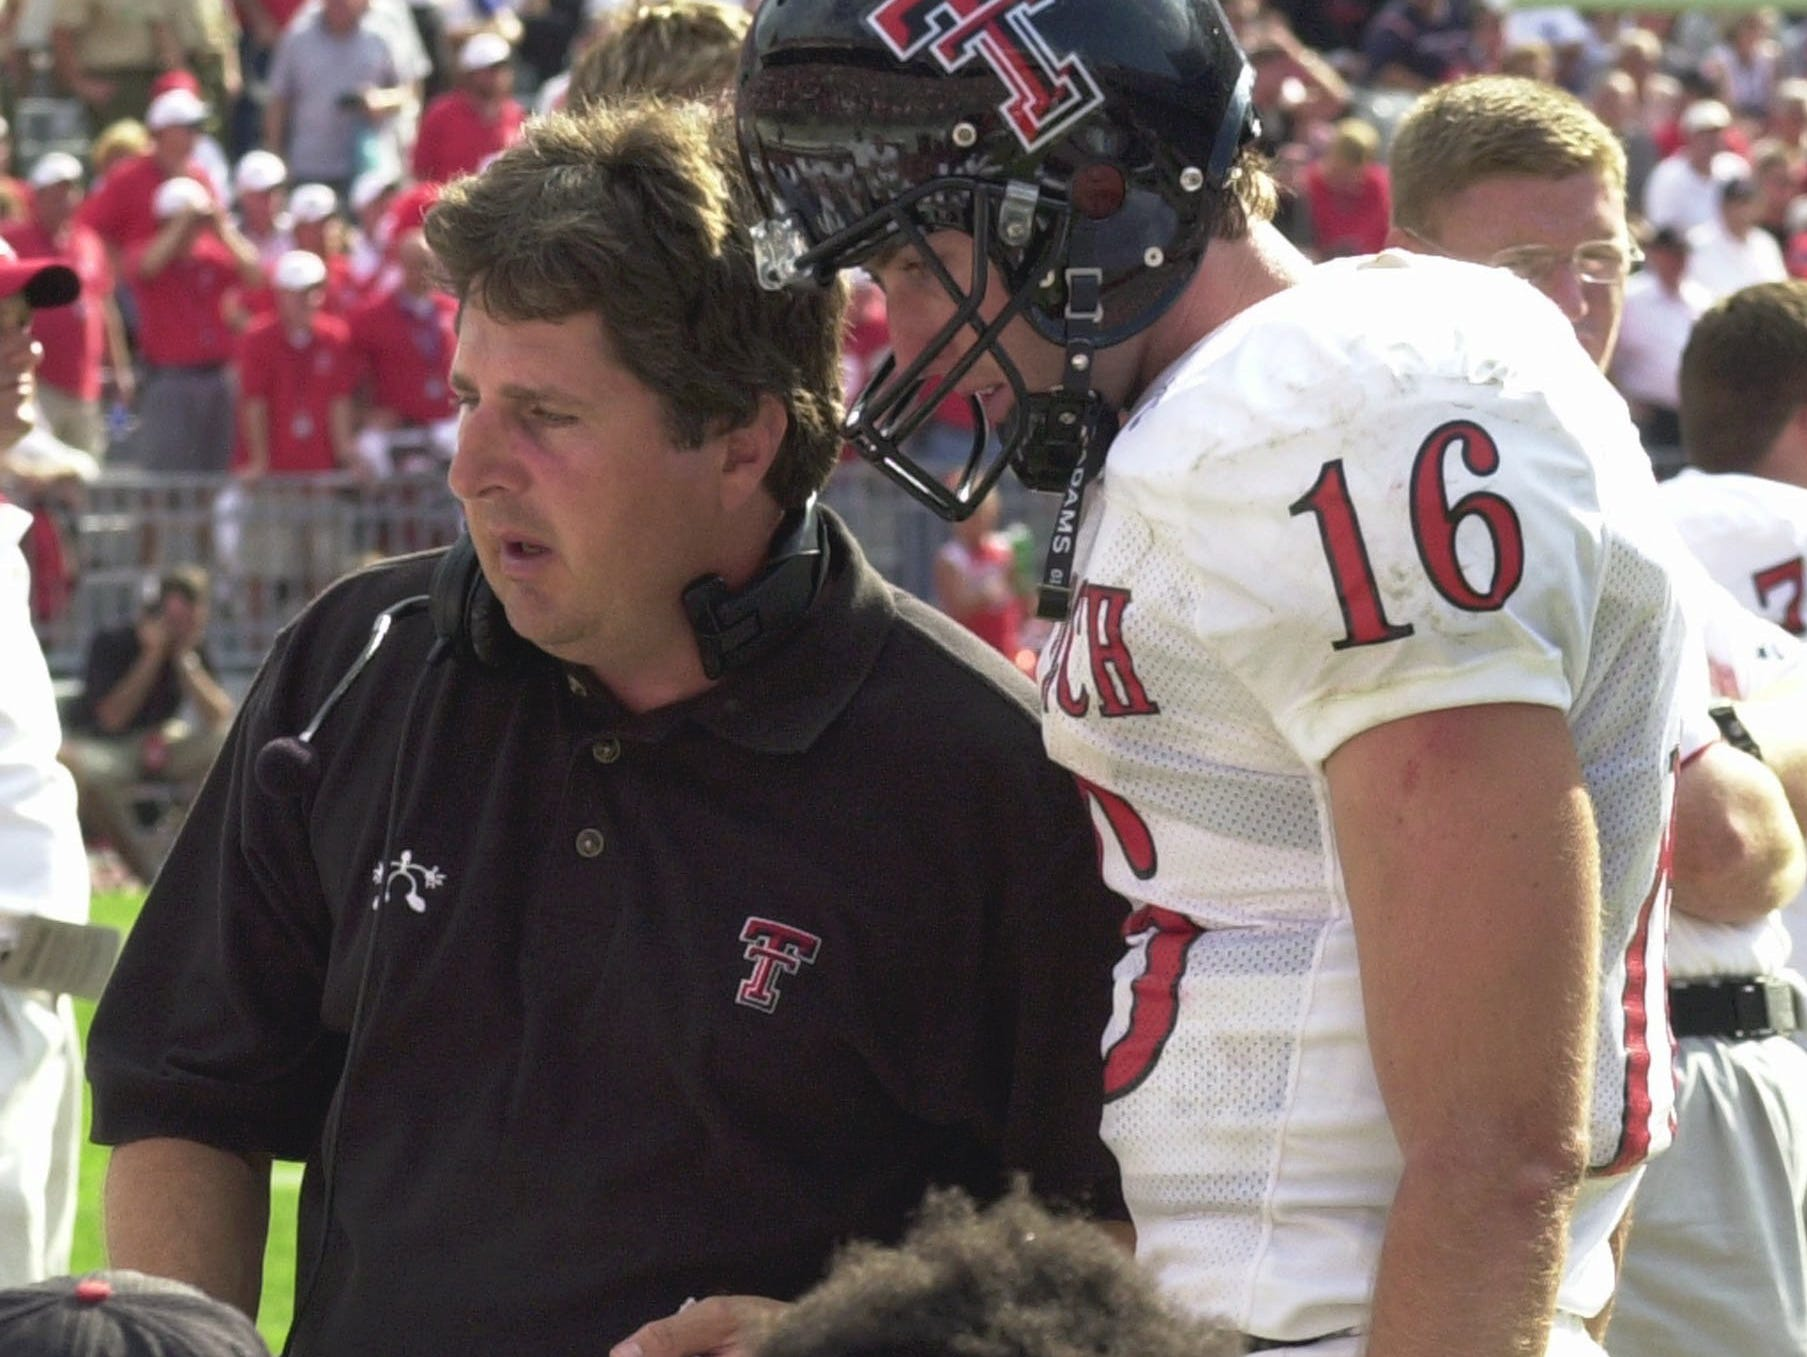 Texas Tech coach Mike Leach talks with quarterback Kliff Kingsbury during the fourth quarter of a 45-21 loss to Ohio State Saturday, Aug. 24, 2002, in Columbus, Ohio.